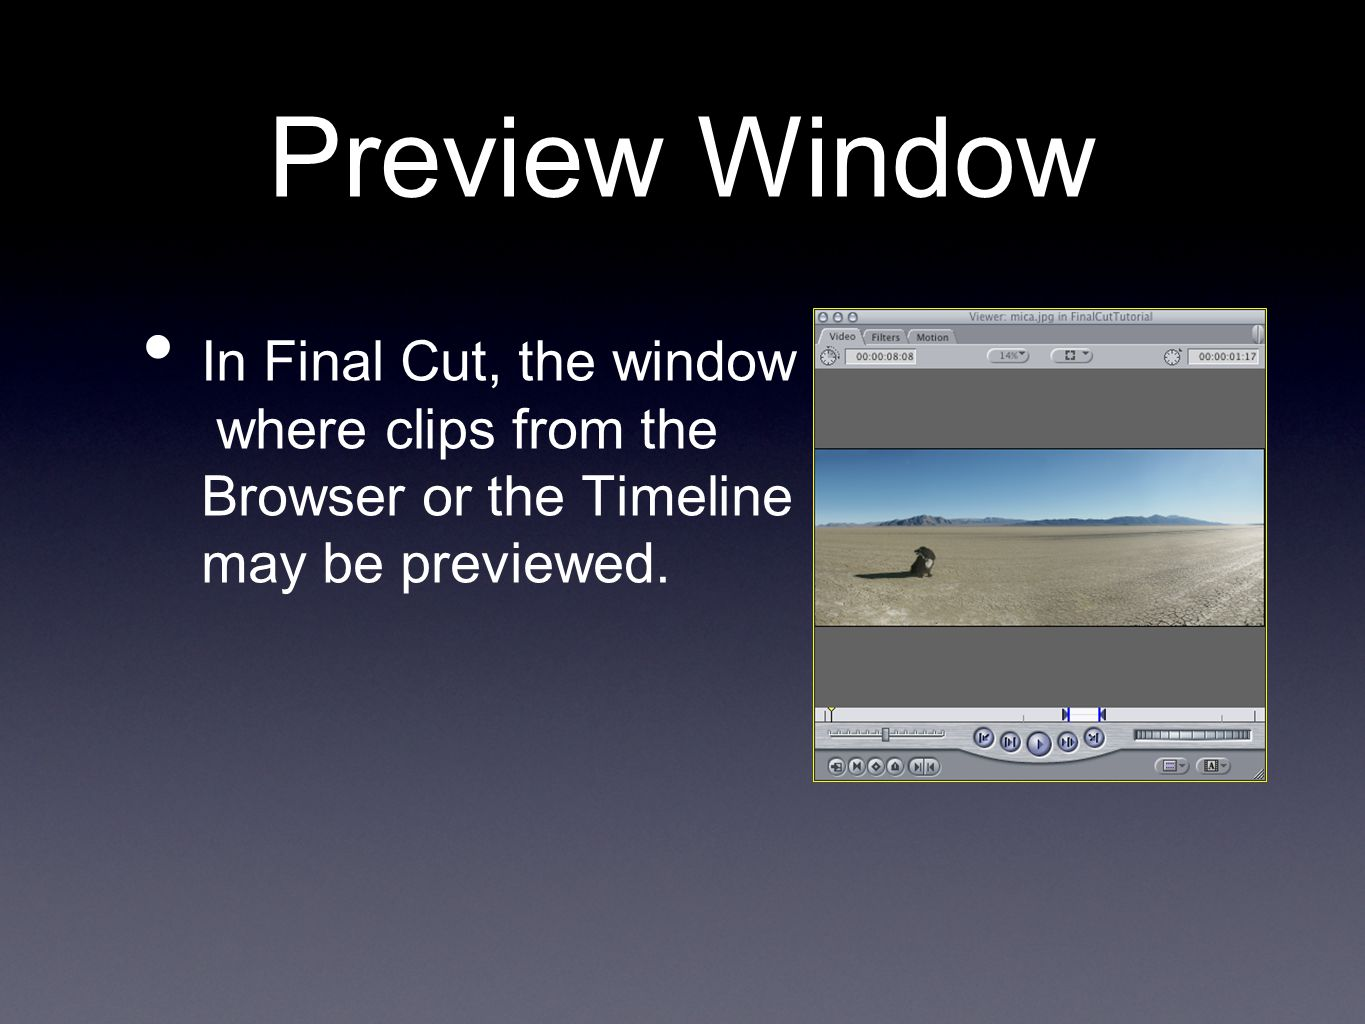 Preview Window In Final Cut, the window where clips from the Browser or the Timeline may be previewed.